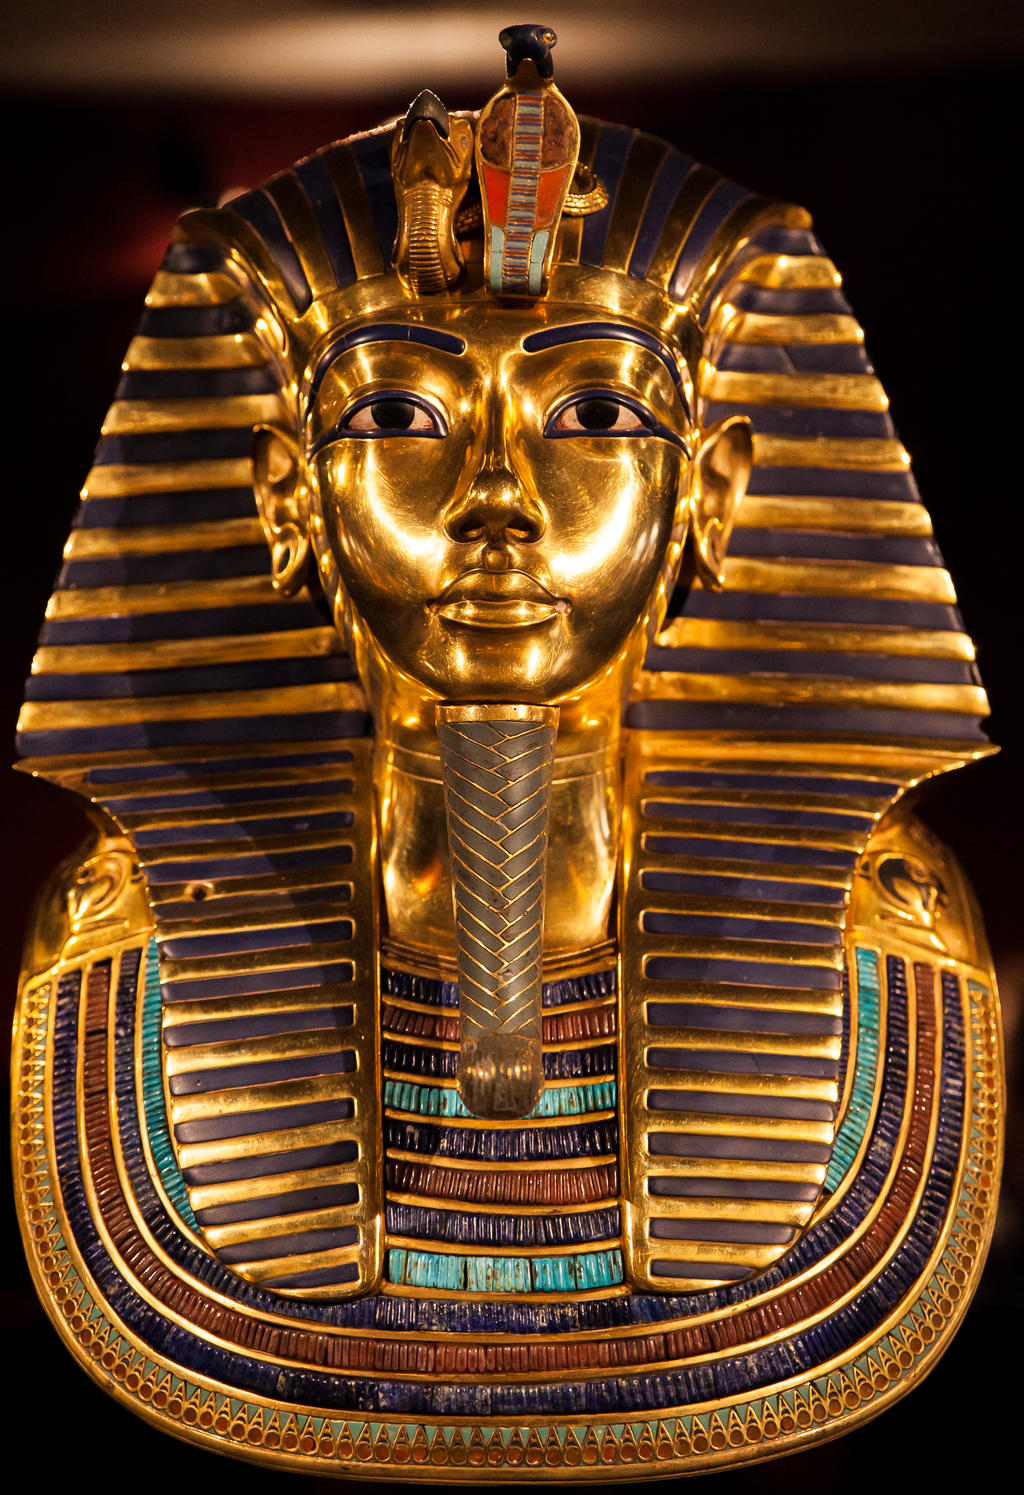 the life and reign of king tutankhamen in ancient egypt So that means that the wet nurse was holding the boy-king-to-be reign during tutankhamun's  tutankhamen: life and death of  of ancient egypt: tutankhamun.